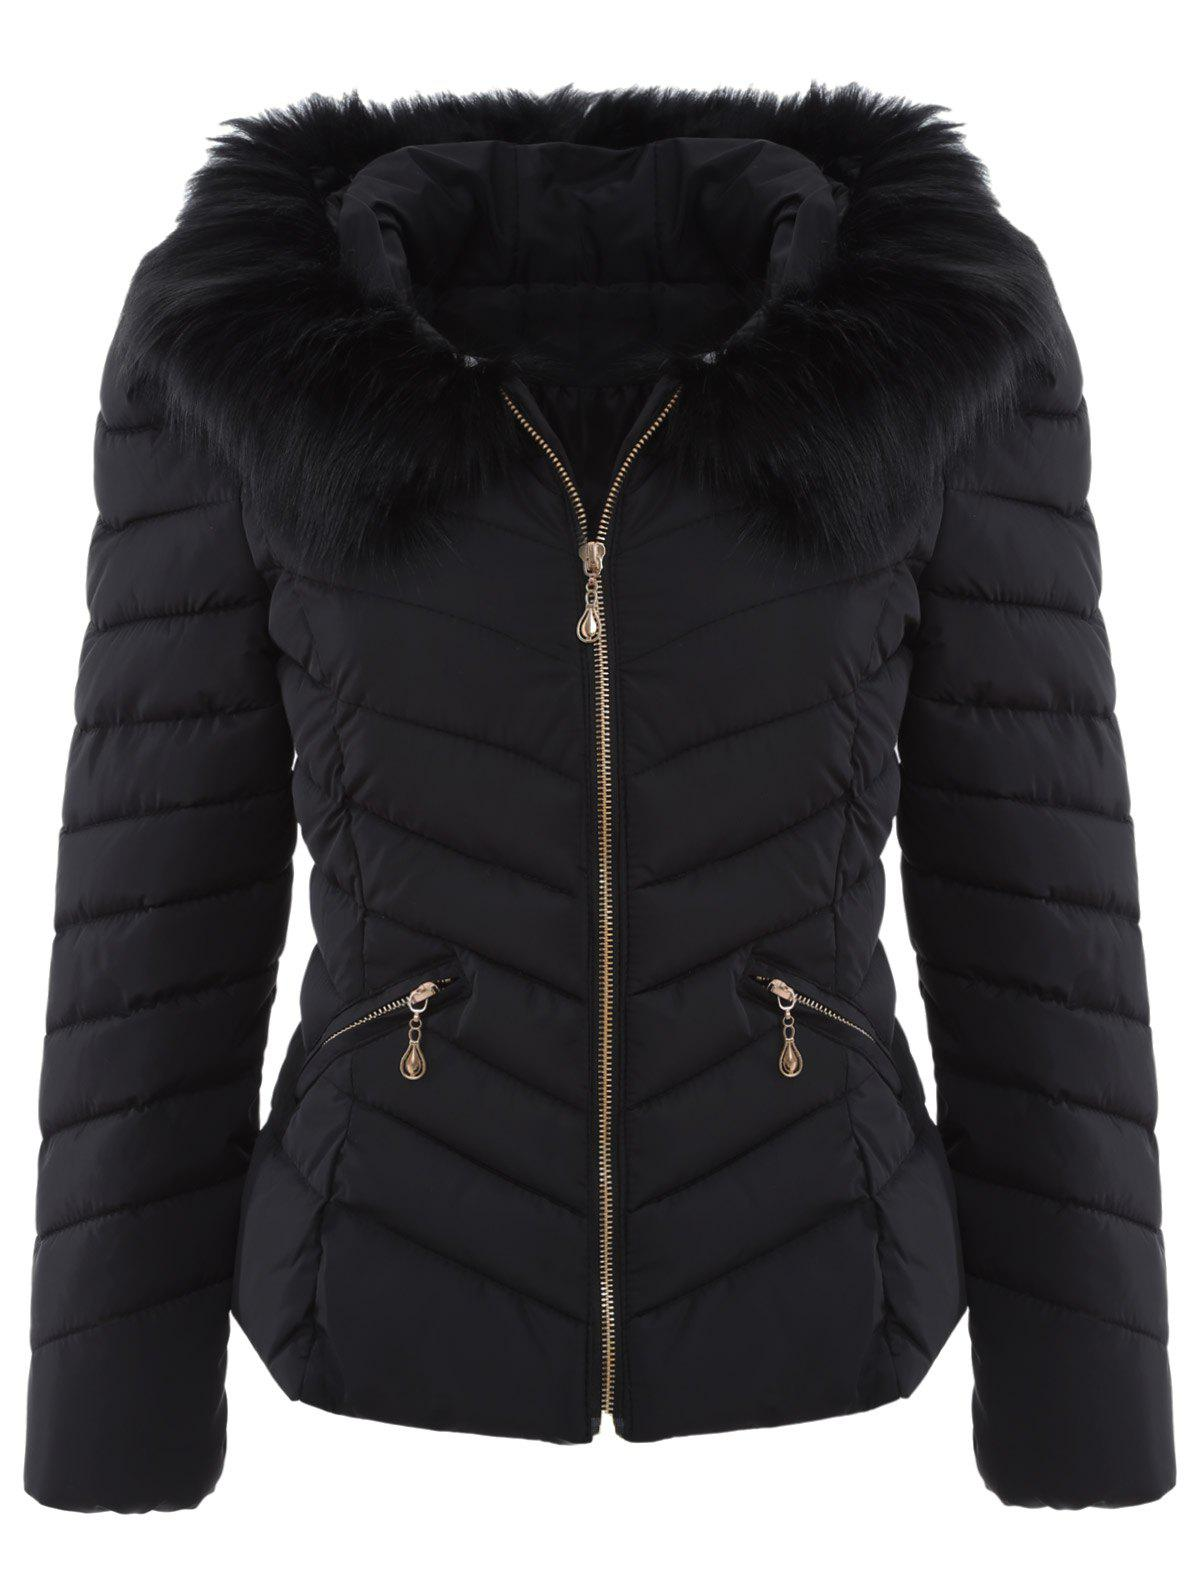 Chervon Faux Fur Hooded Quilted Jacket - BLACK ONE SIZE